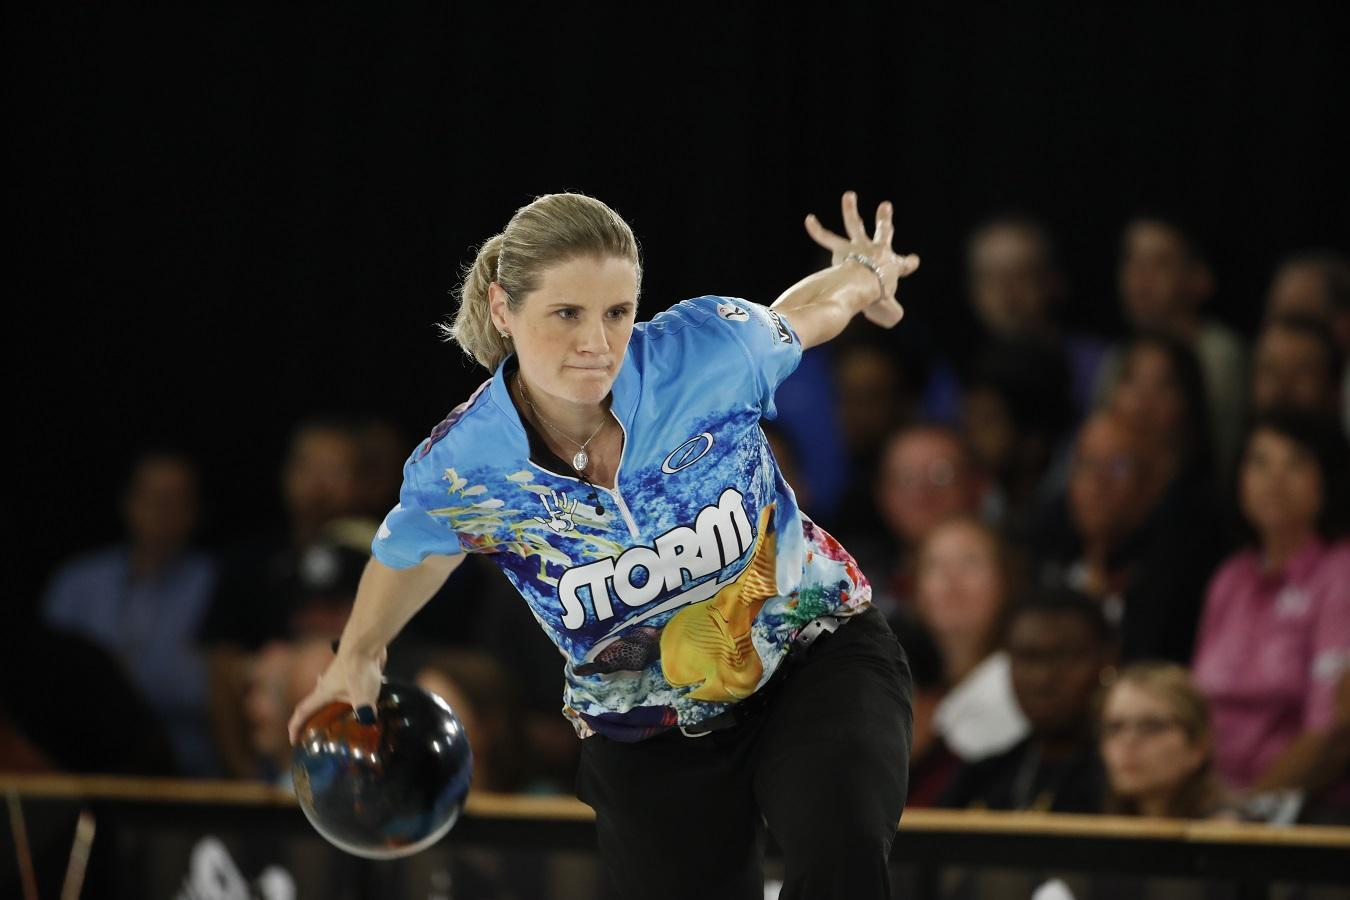 Kelly Kulick Makes Match Play at 55th QubicaAMF World Cup